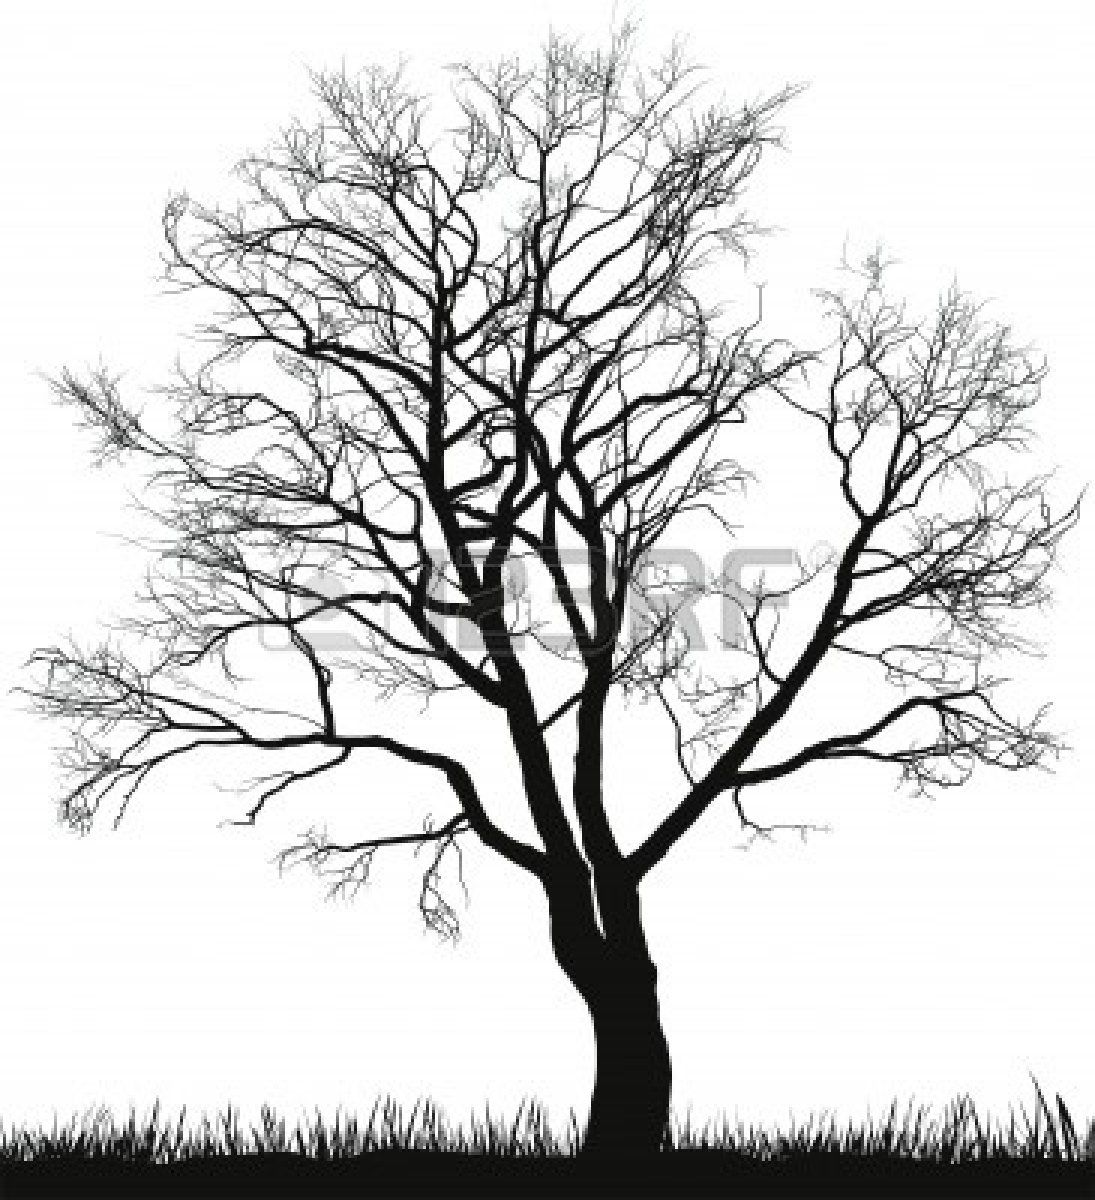 Black walnut leaf clipart black and white image royalty free Black walnut | Tattoos in 2019 | Tree illustration, Tree silhouette ... image royalty free